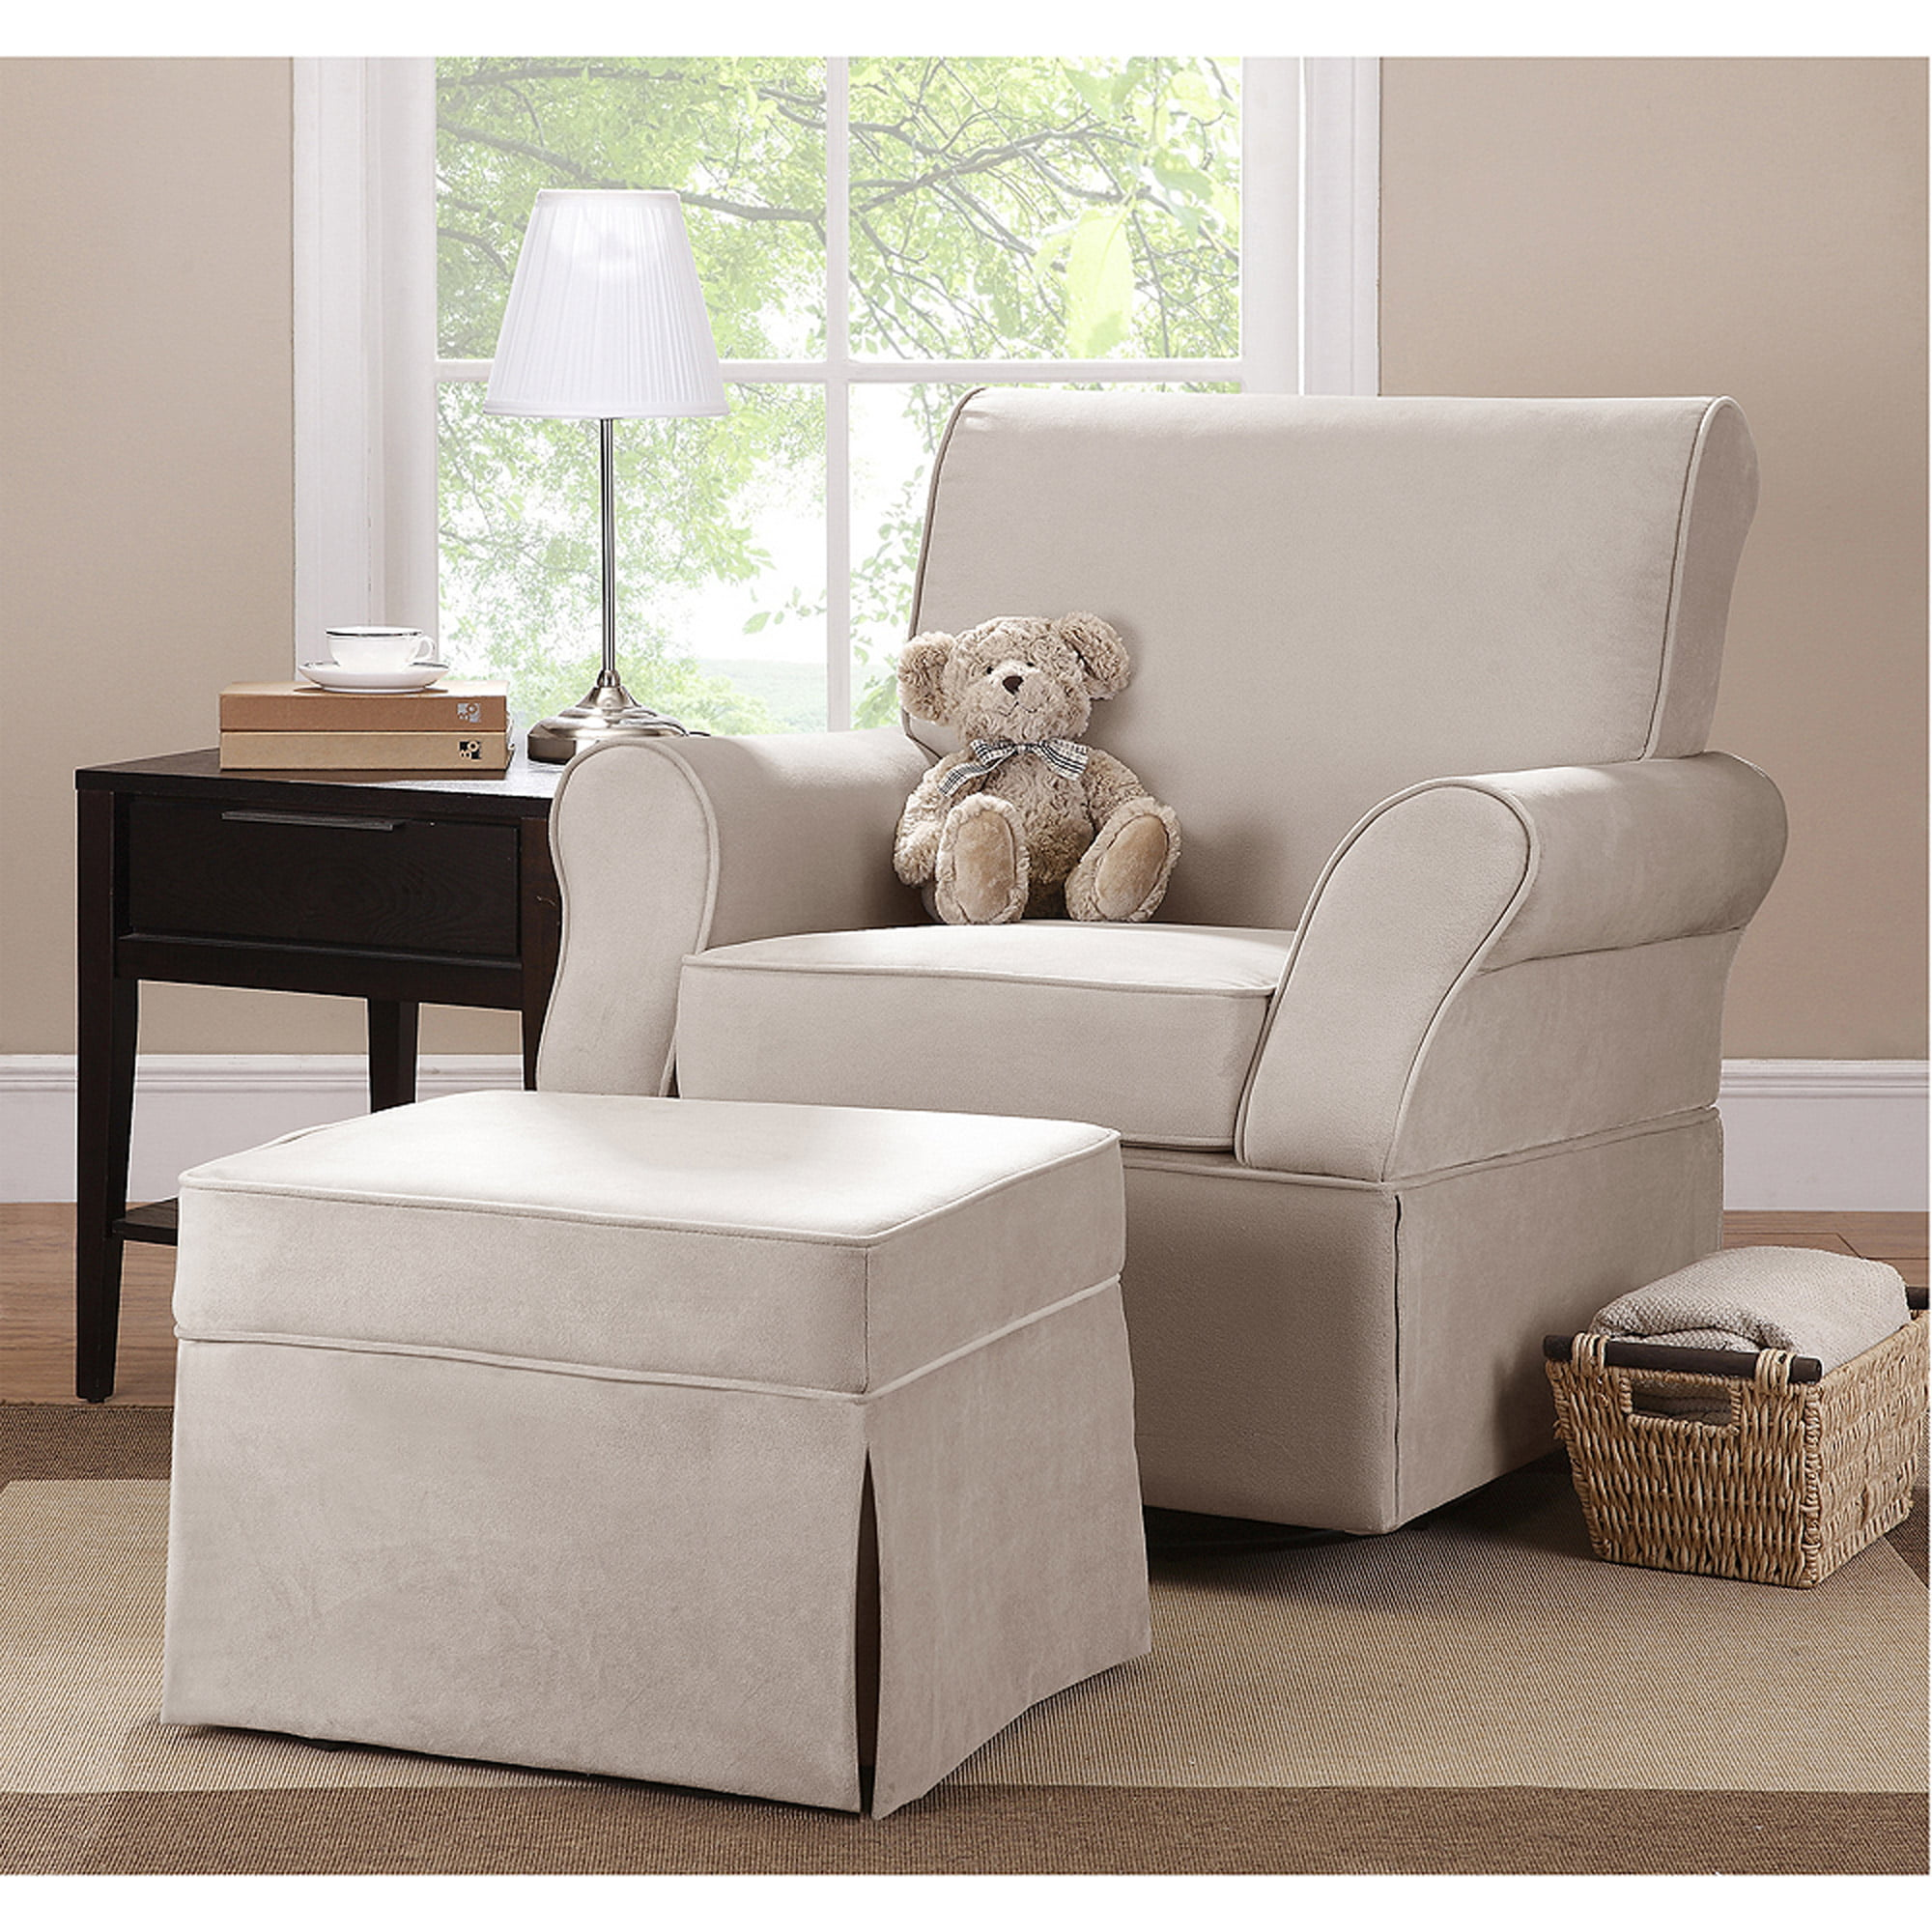 Baby Relax Kelcie Swivel Glider U0026 Ottoman, Choose Your Color   Walmart.com